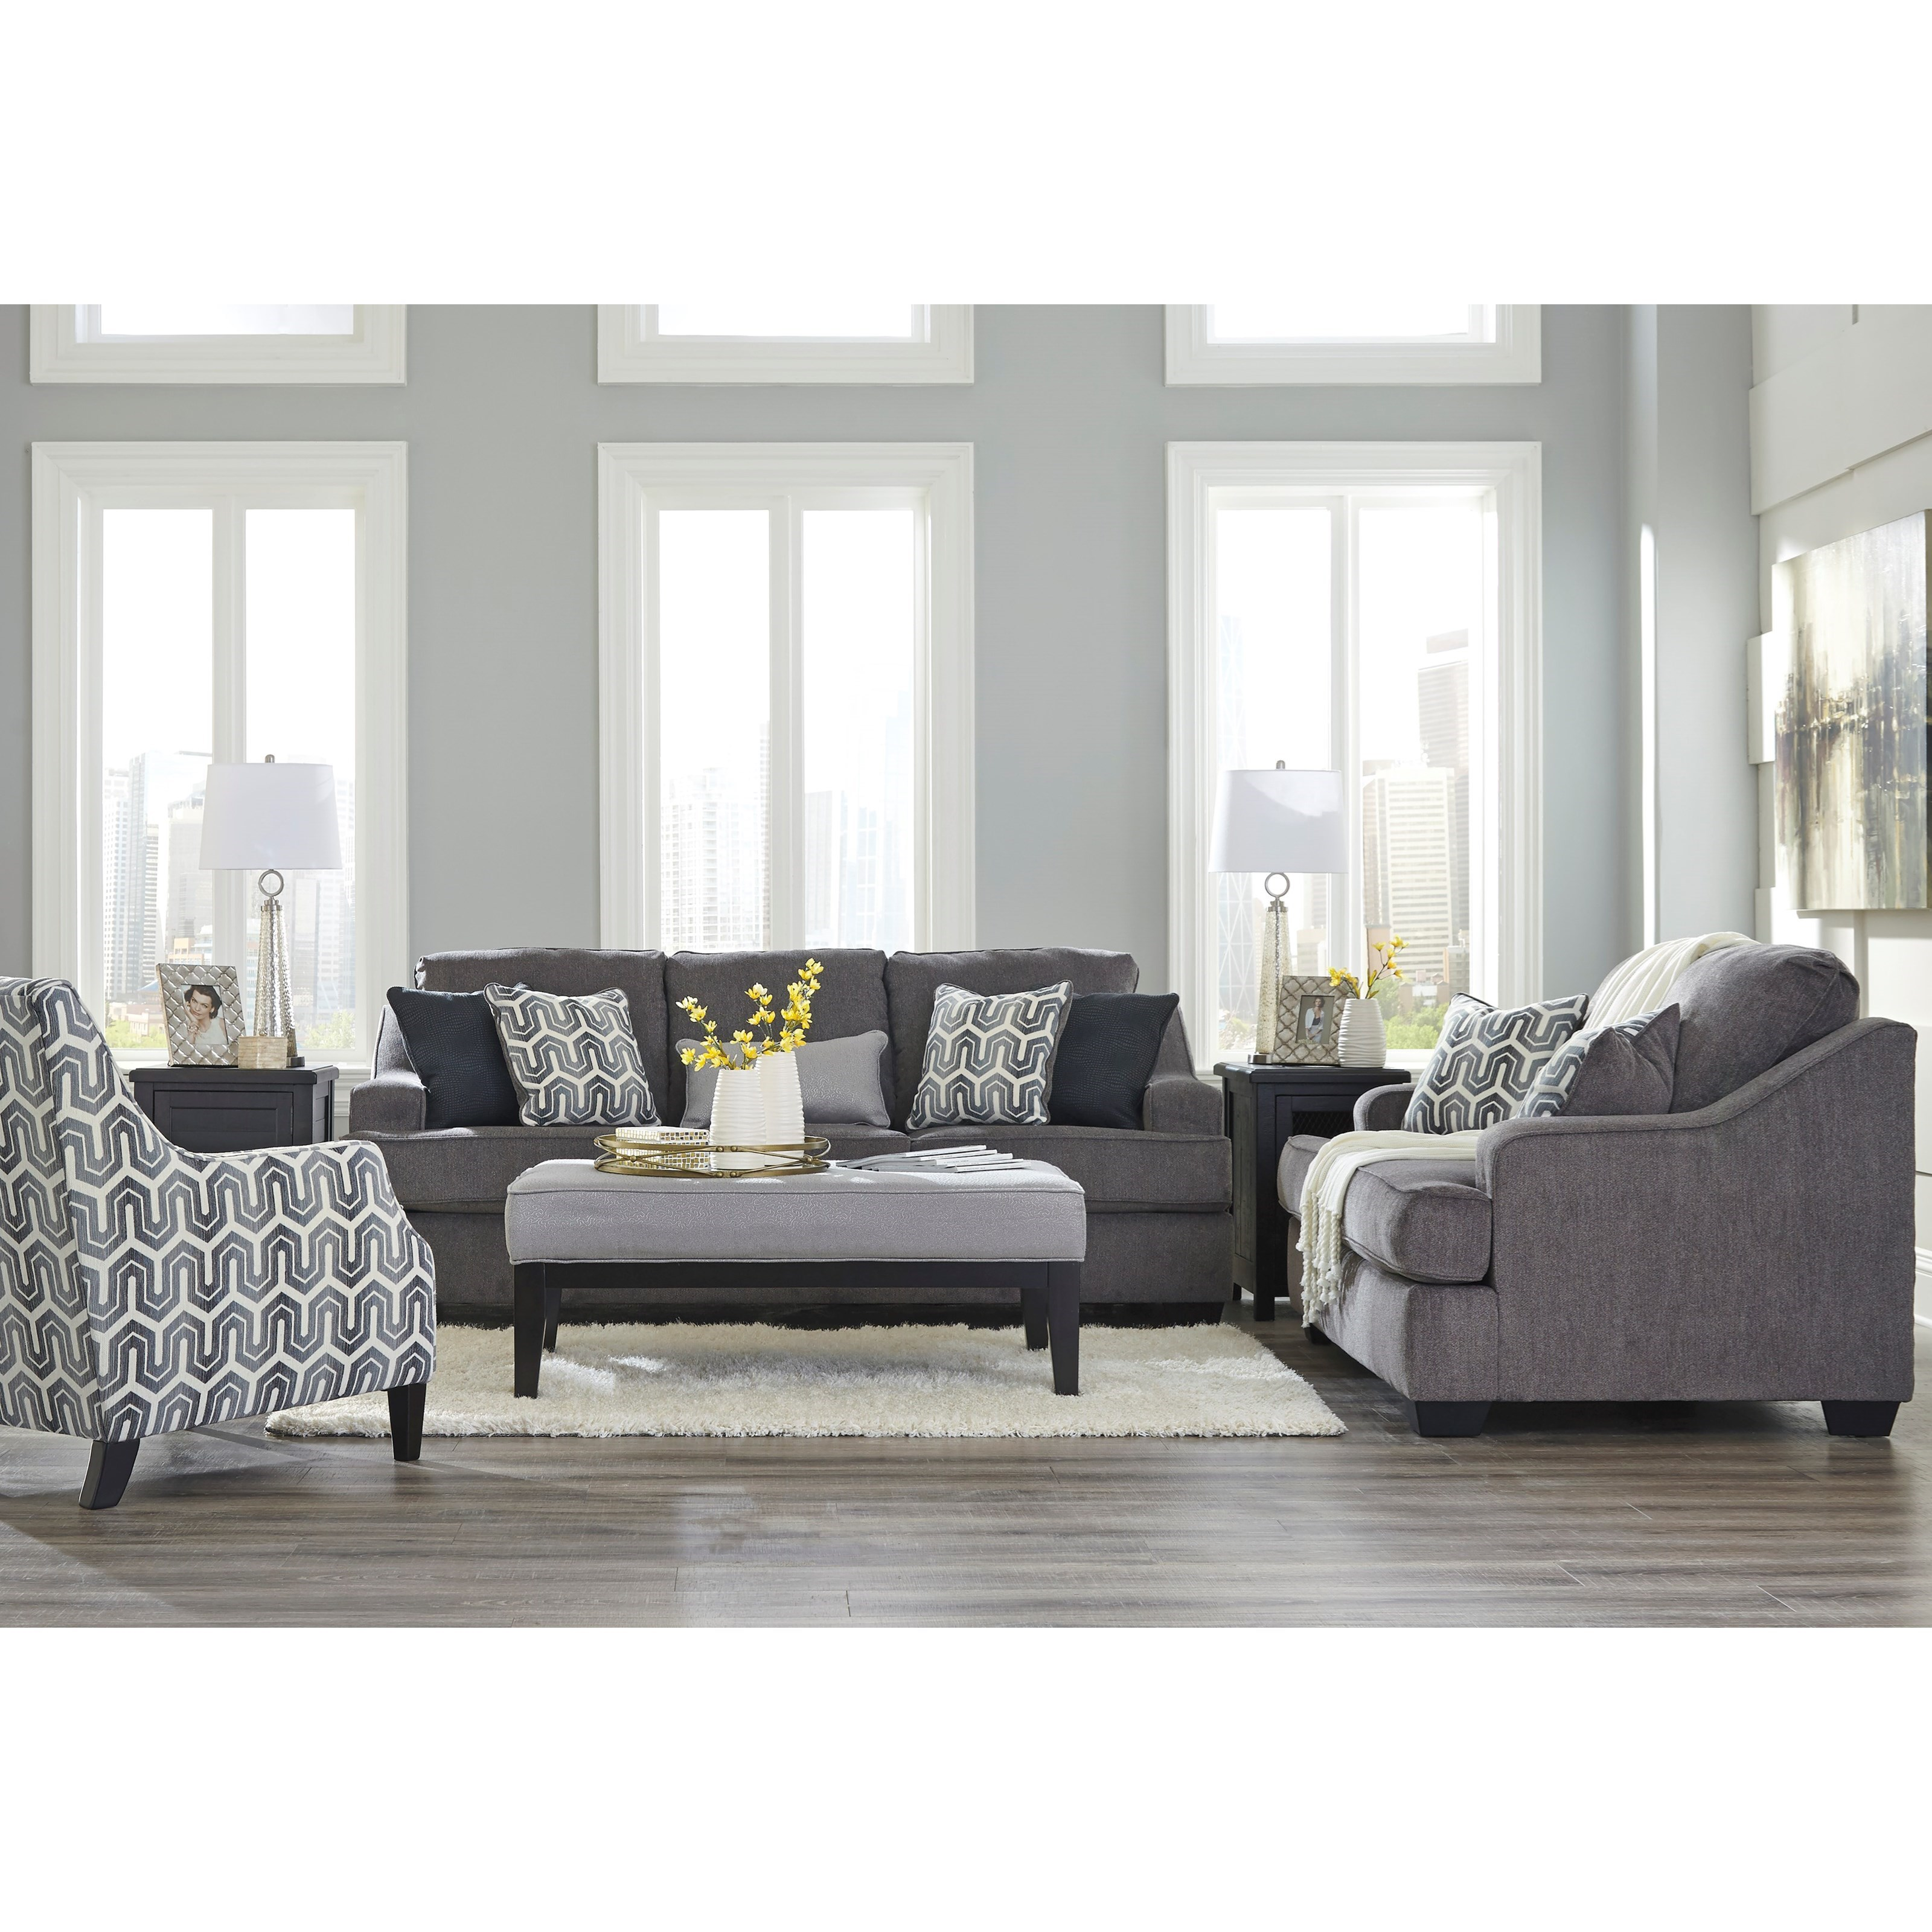 Signature Design By Ashley Gilmer Stationary Living Room Group Del Sol Furniture Stationary